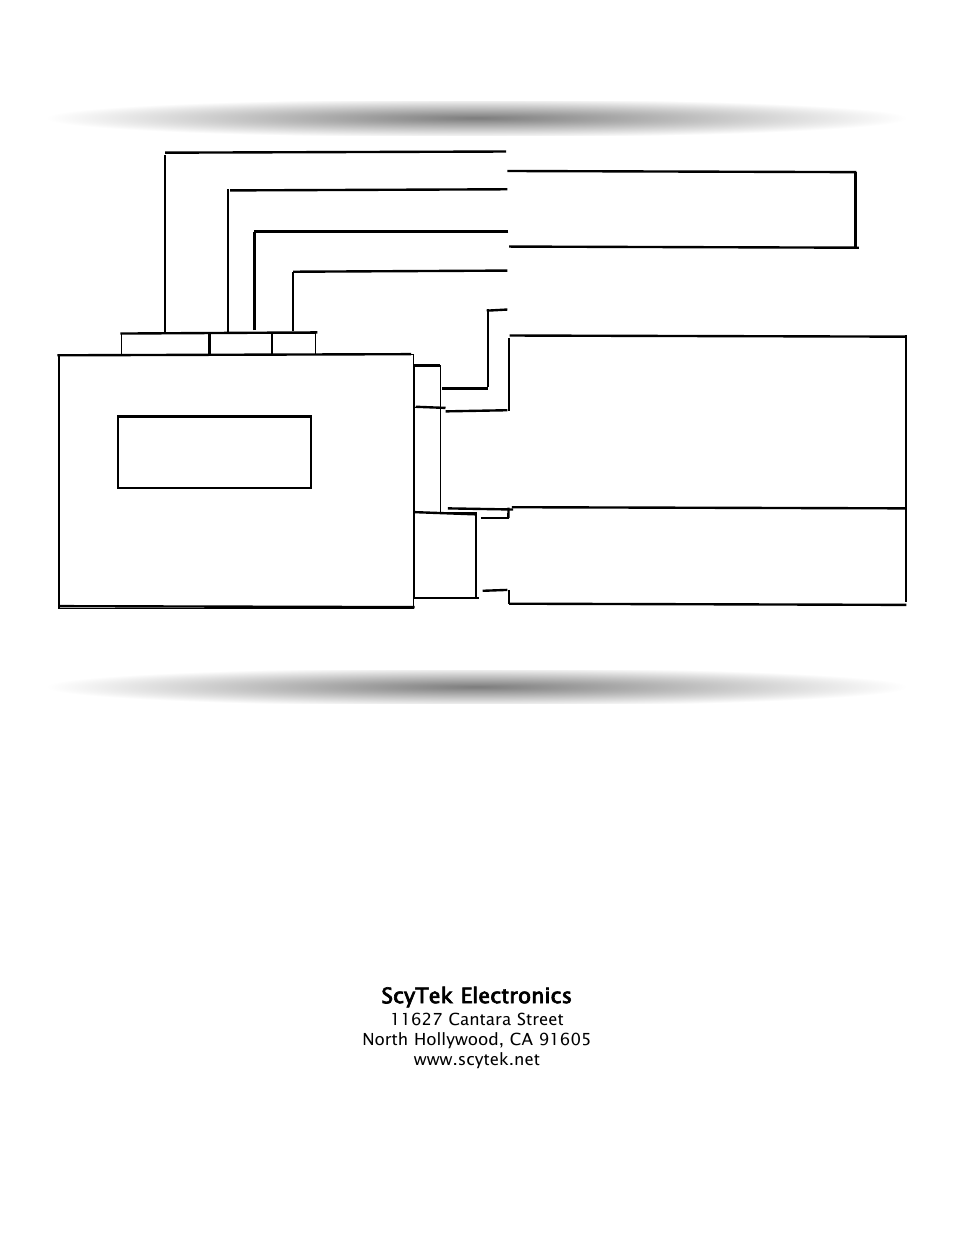 Wiring Diagram Technical Information Control Unit A10 Scytek Door In Contact Series Wire Electronics User Manual Page 20